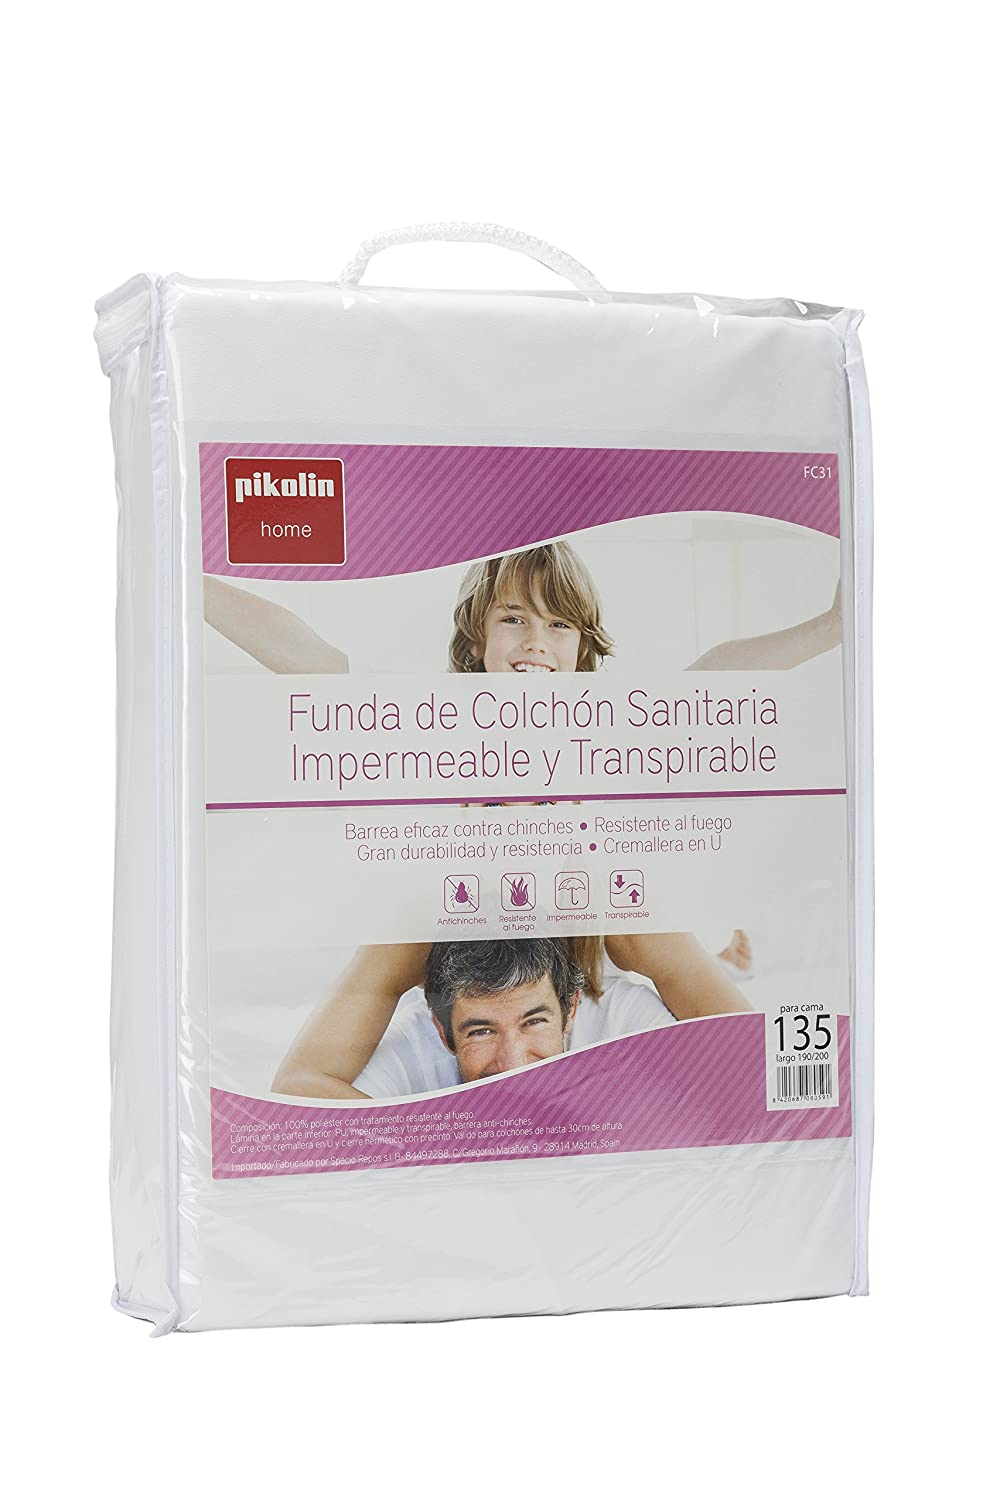 Pikolin Home - Funda de colchón antichinches, impermeable, transpirable e ignifuga, 150 x 190/200 cm, cama 150 (Todas las medidas): Amazon.es: Hogar